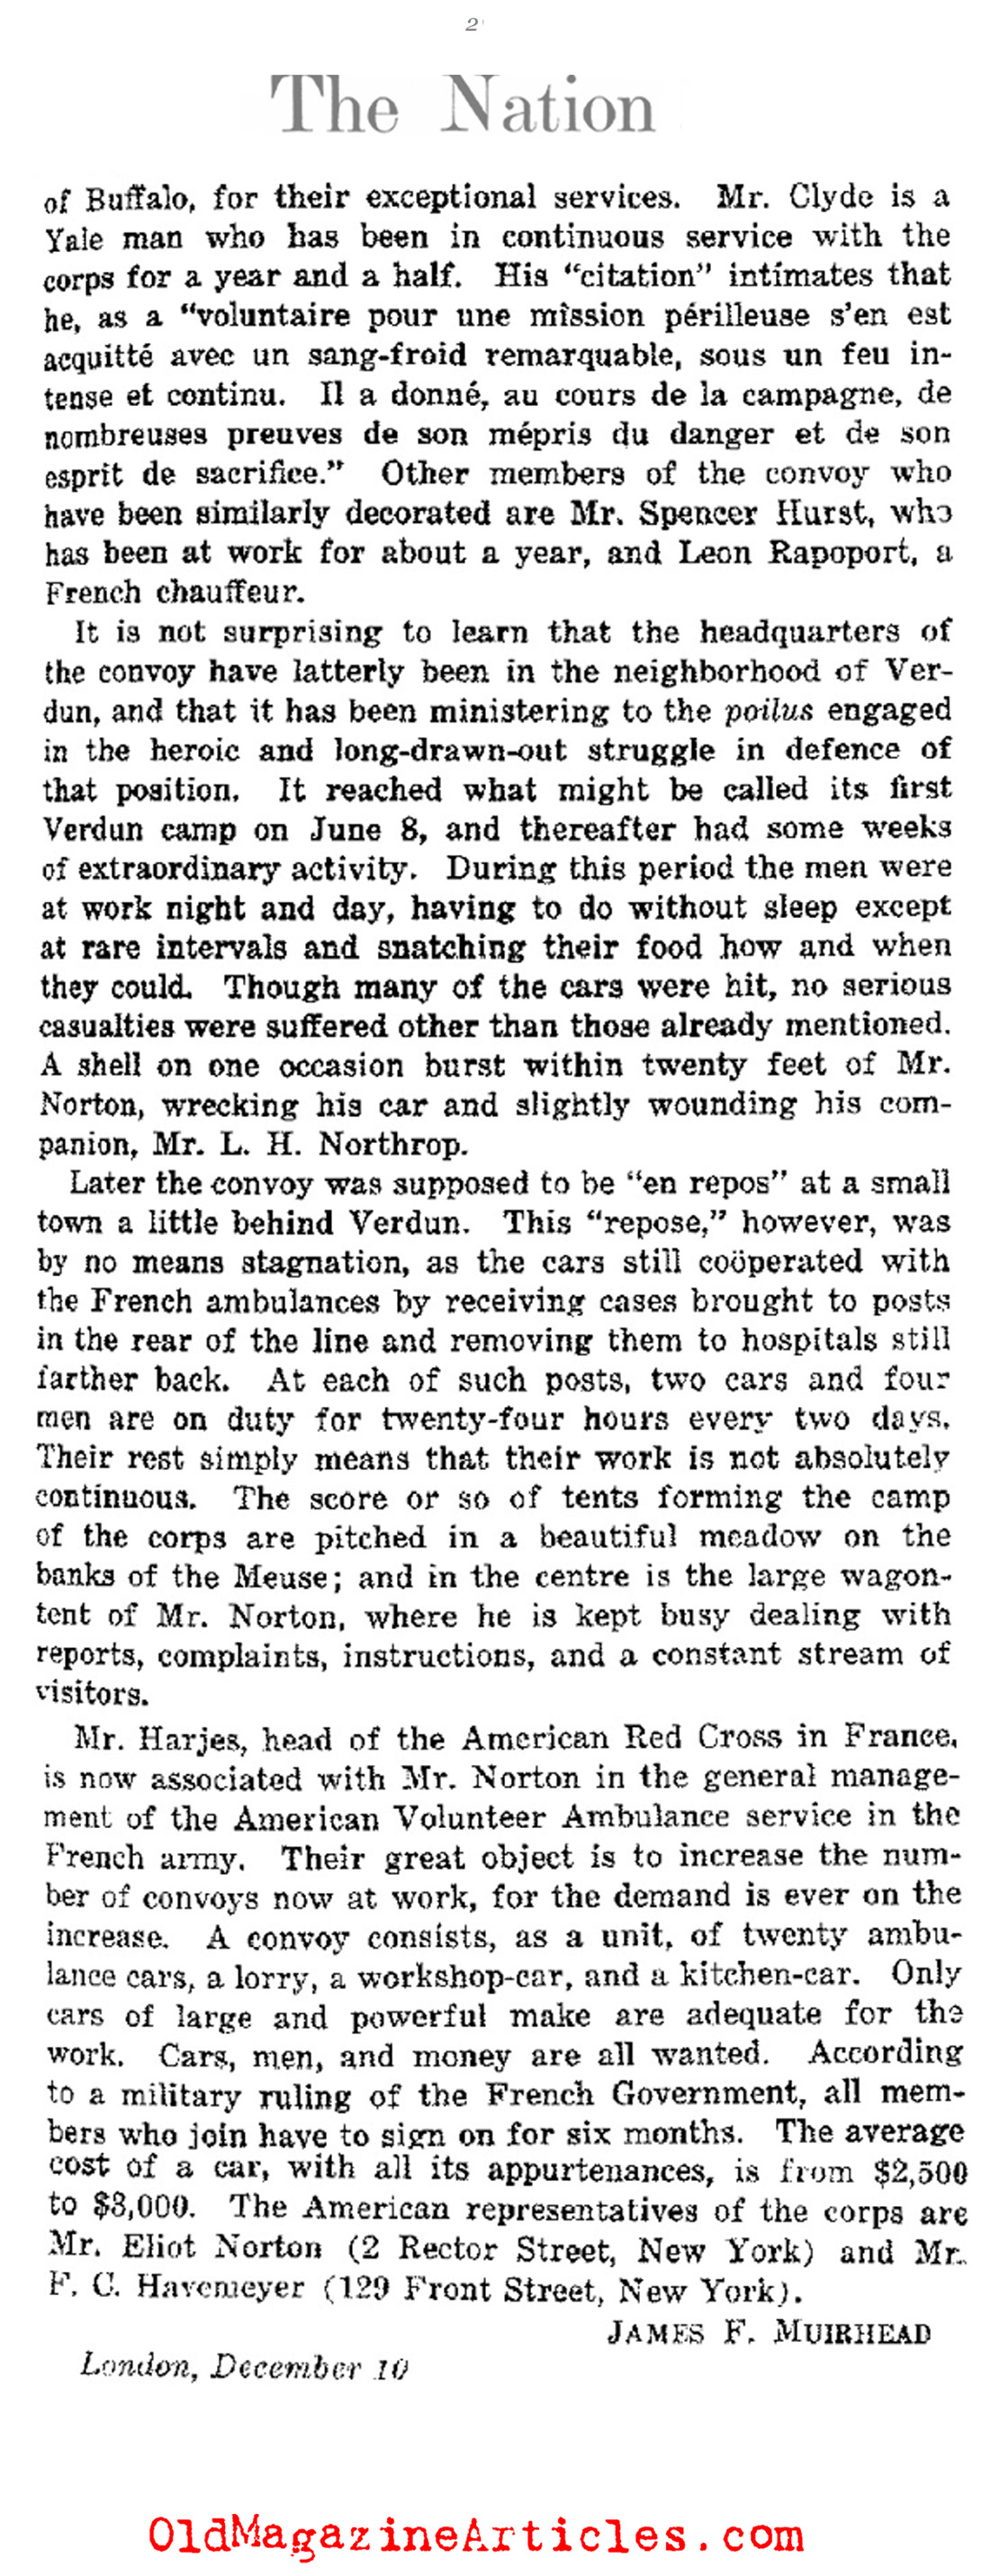 The American Volunteer Ambulance Corps (The Nation, 1917)